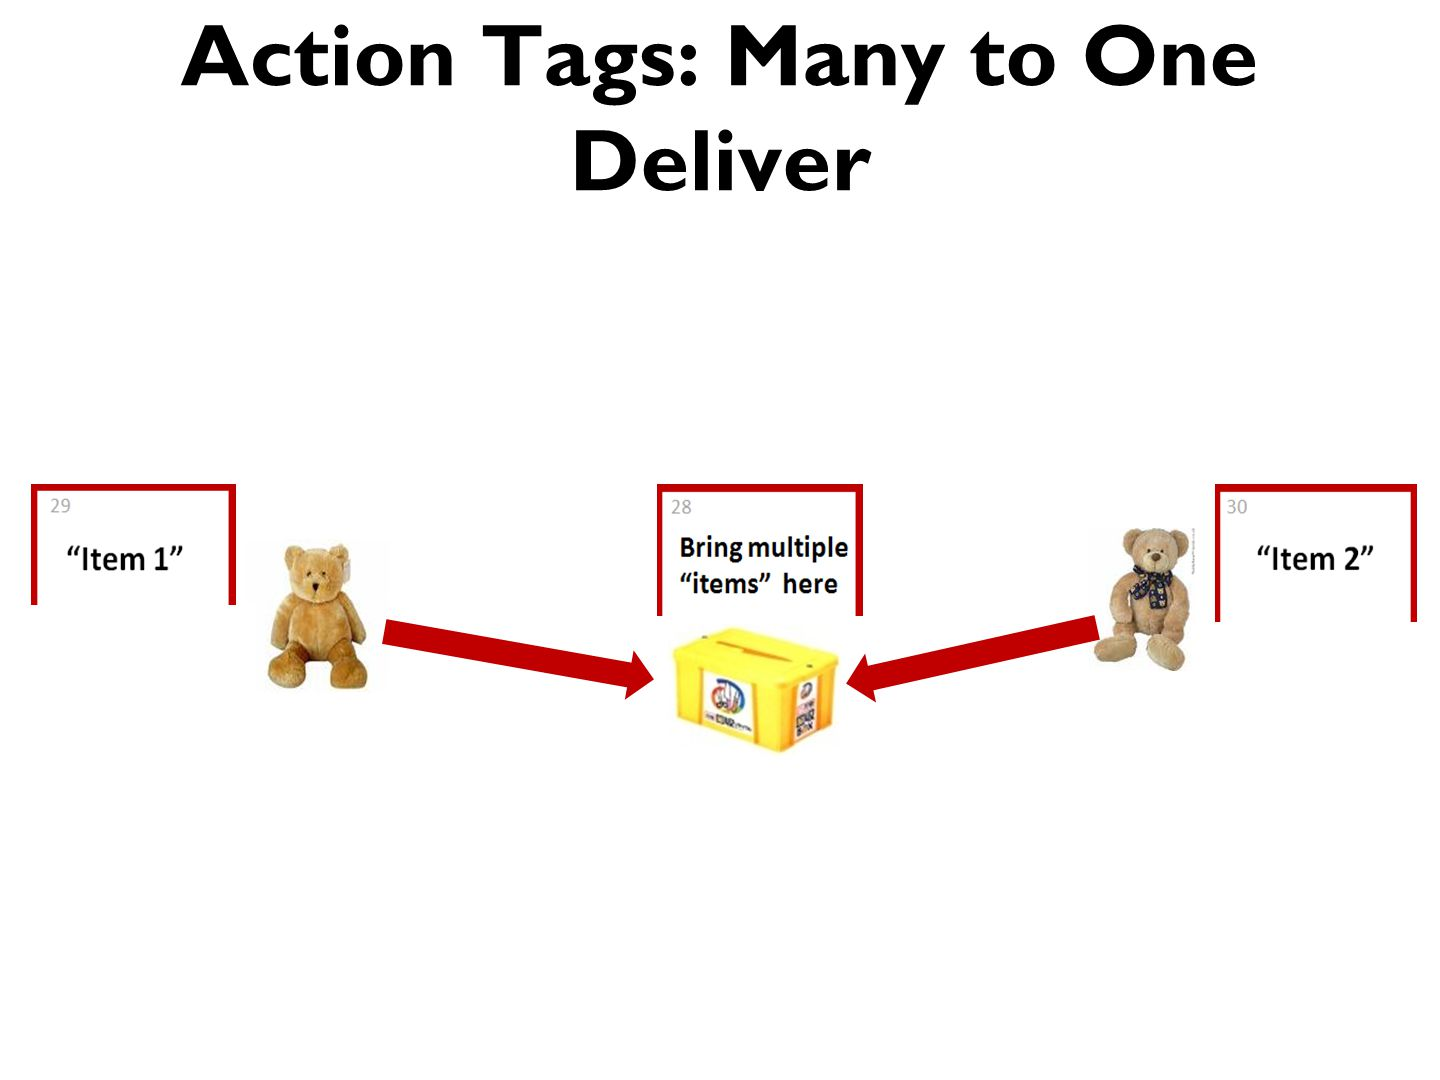 Action Tags: Many to One Deliver